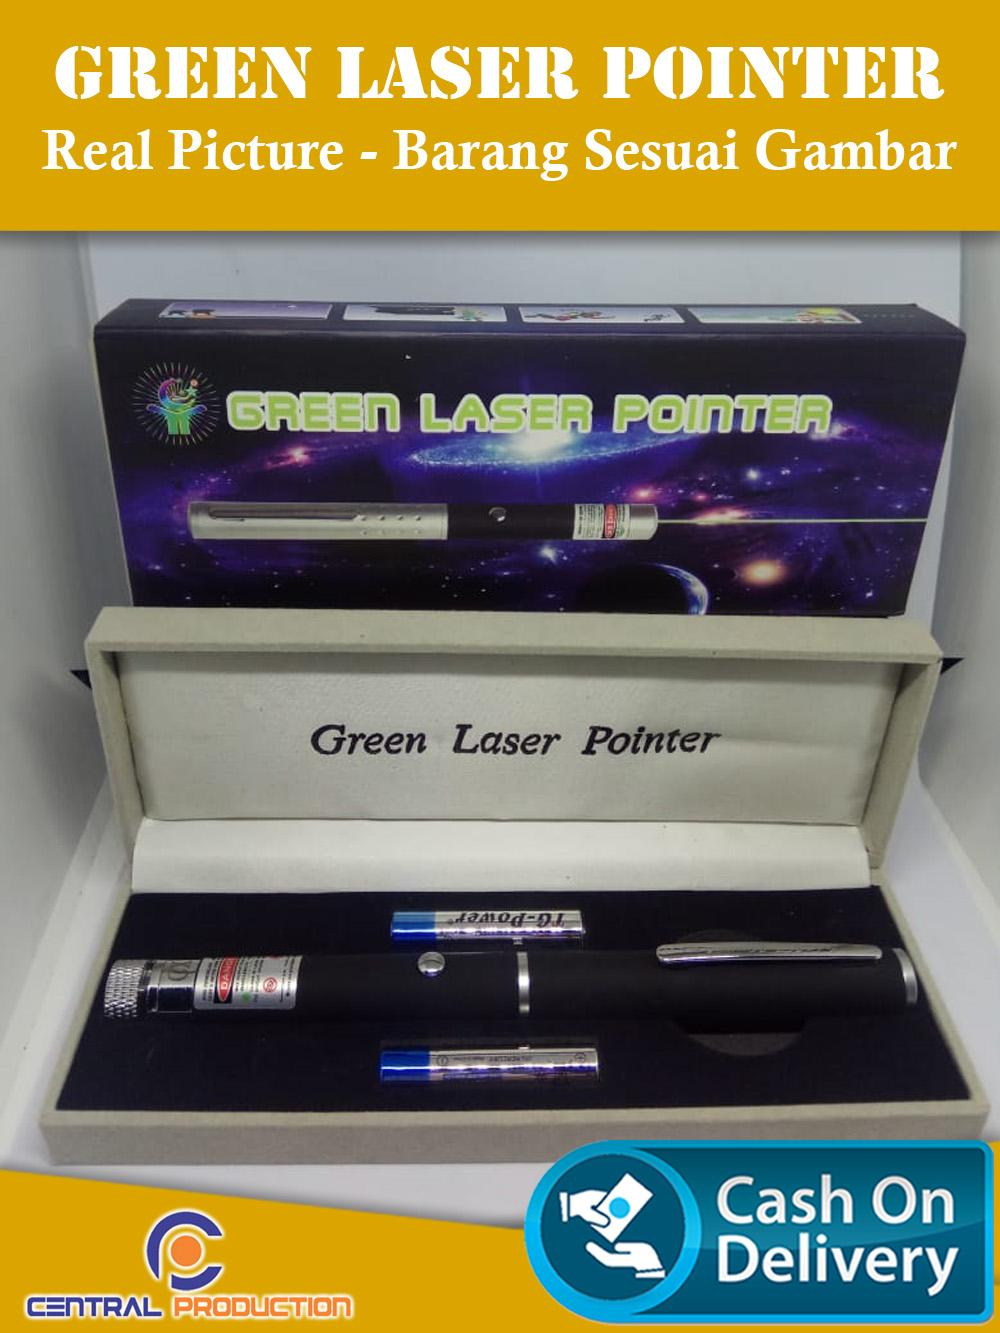 The Cheapest Price Green Laser Pointer Hijau 303 Senter Recharge 10km 1 Mata Terjauh 2 Pcs Baterai Aaa Real Picture